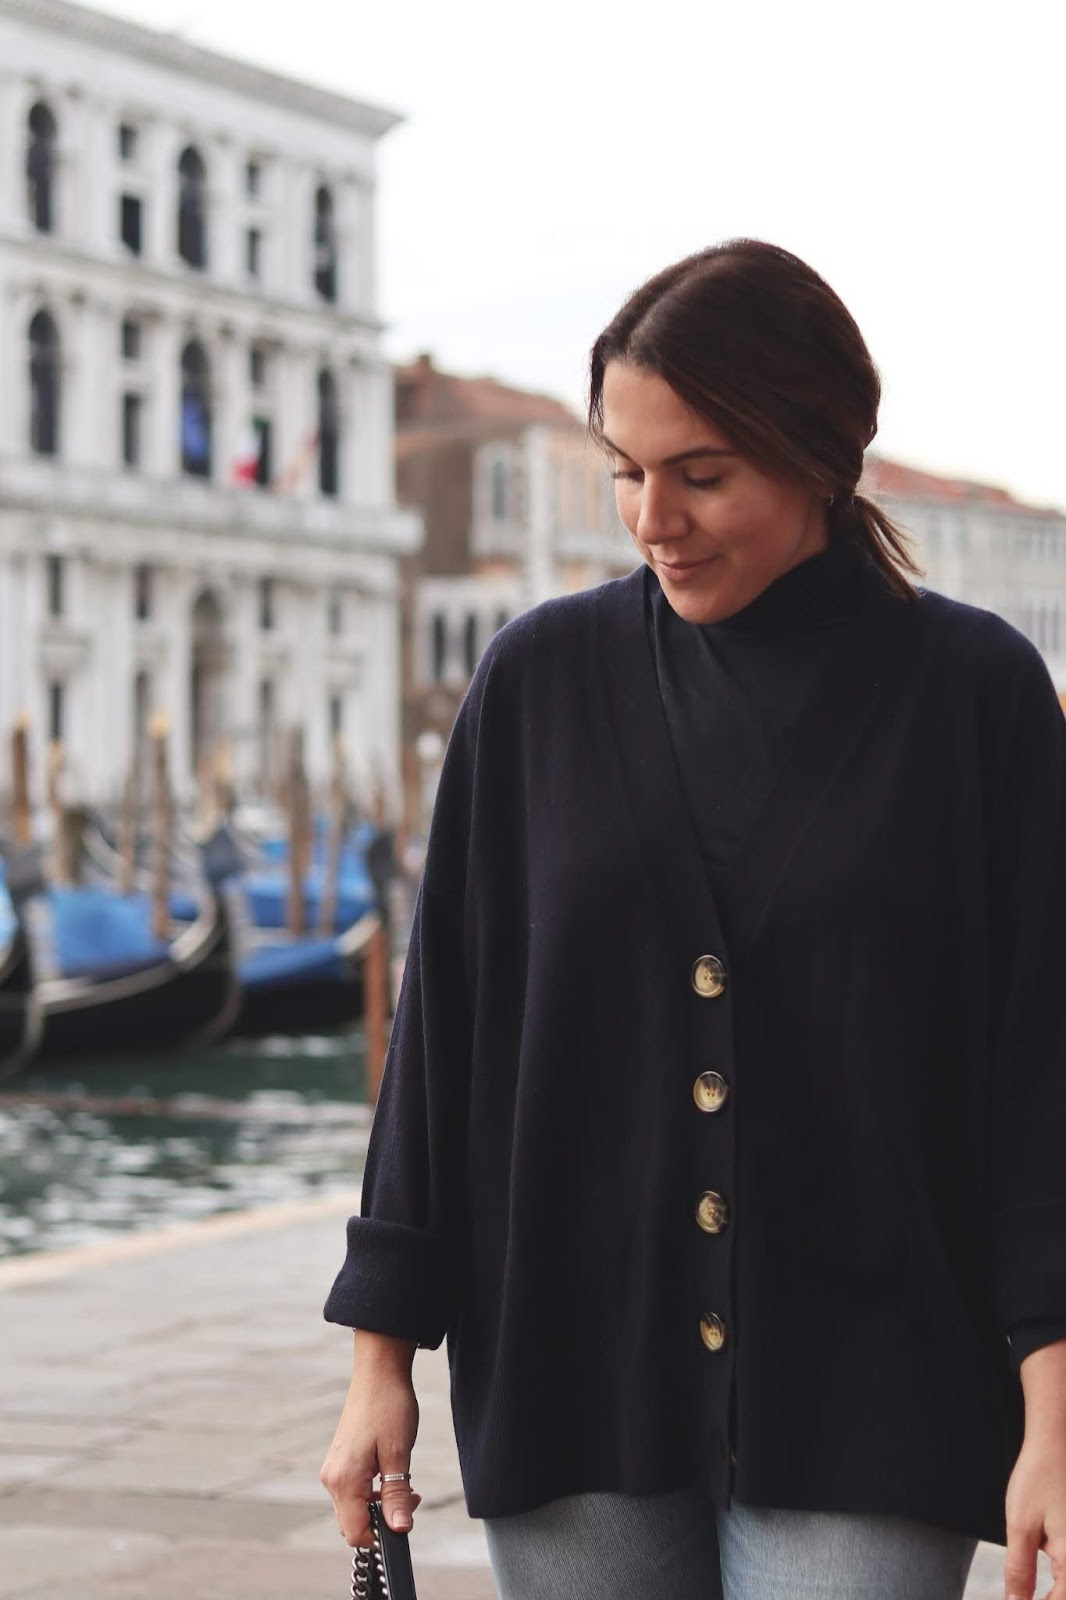 cashmere cardigan travel outfit venice italy vancouver blogger aleesha harris chanel paris dallas boy bag